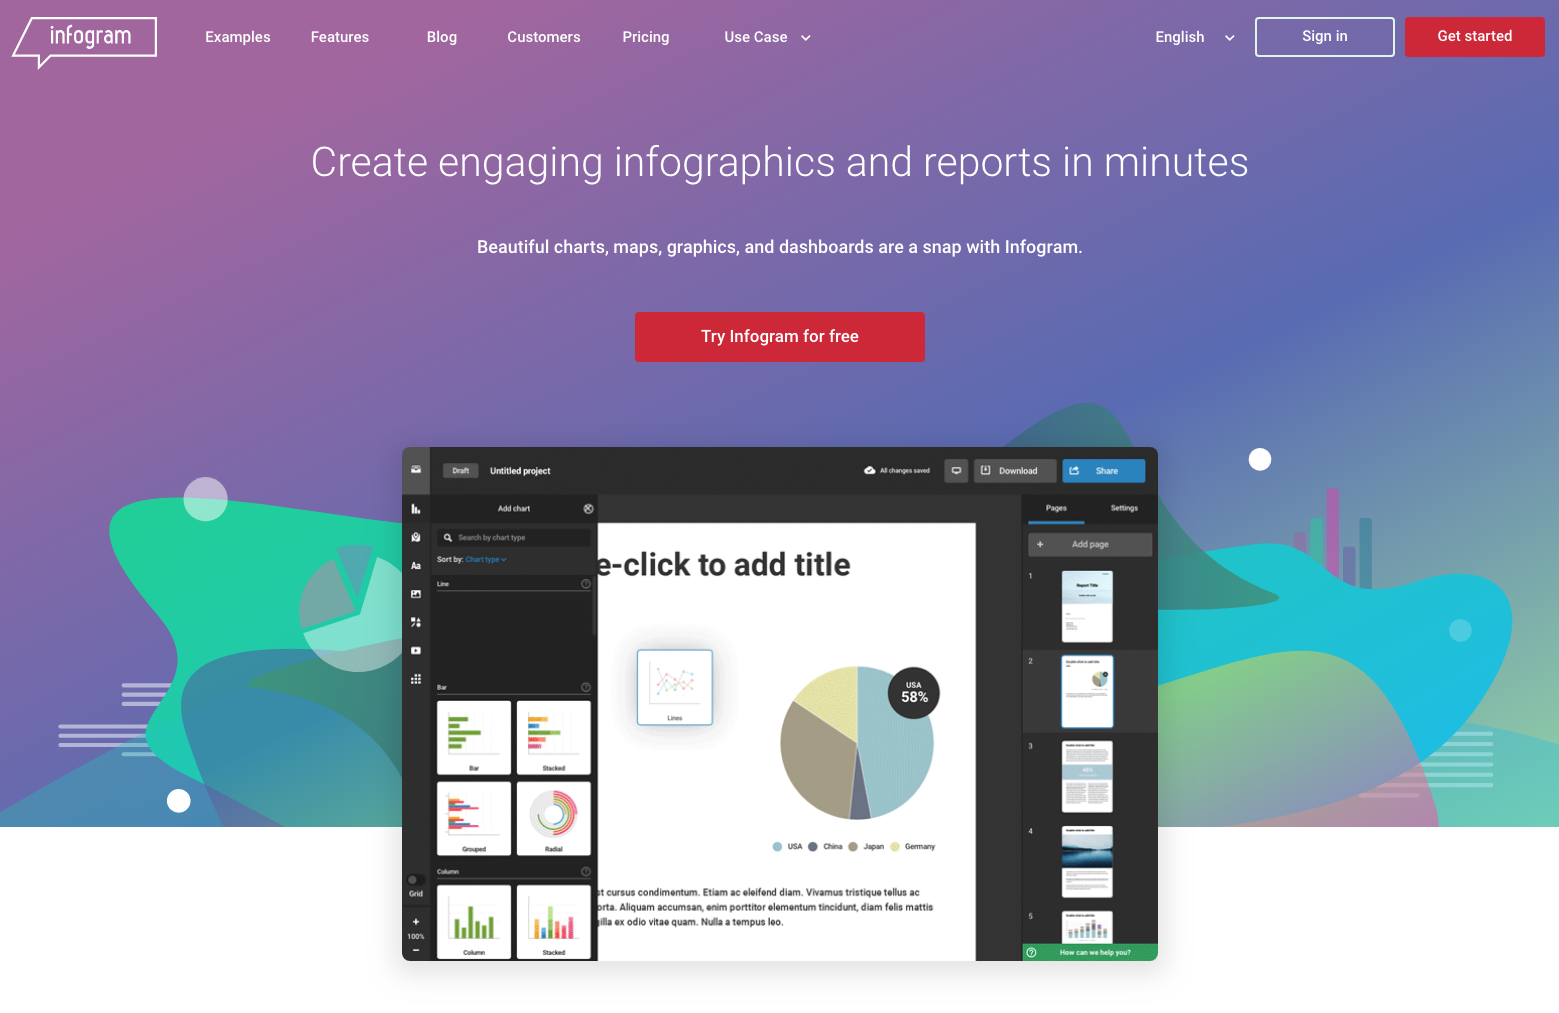 Infogram Website - 67 Awesome Visual Design Tools to Create Stunning Visual Content